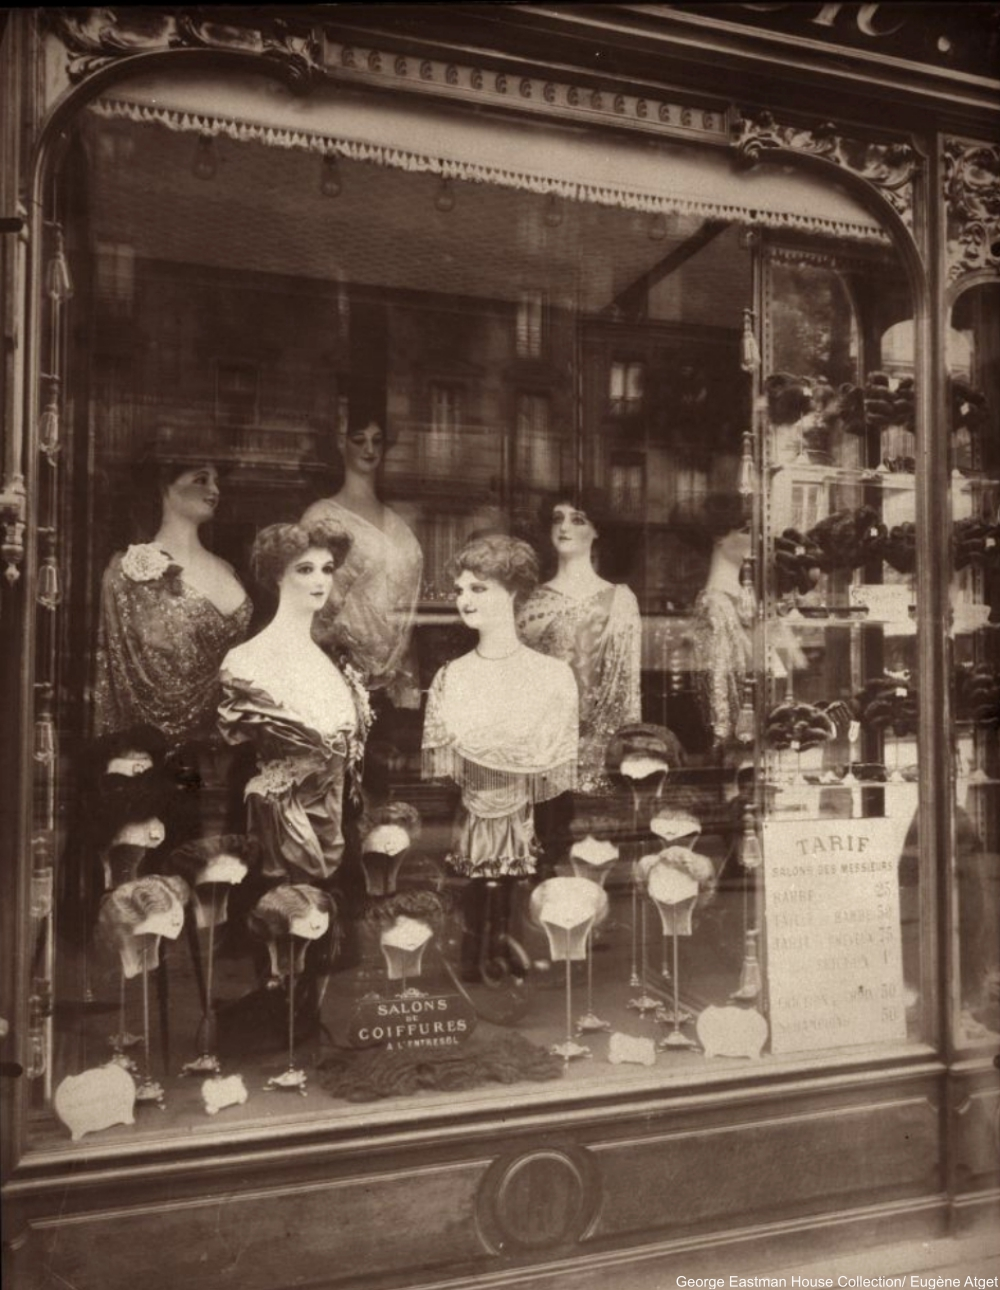 Coiffeur, Bd. de Strasbourg by Eugène Atget 1910s Shop Windows